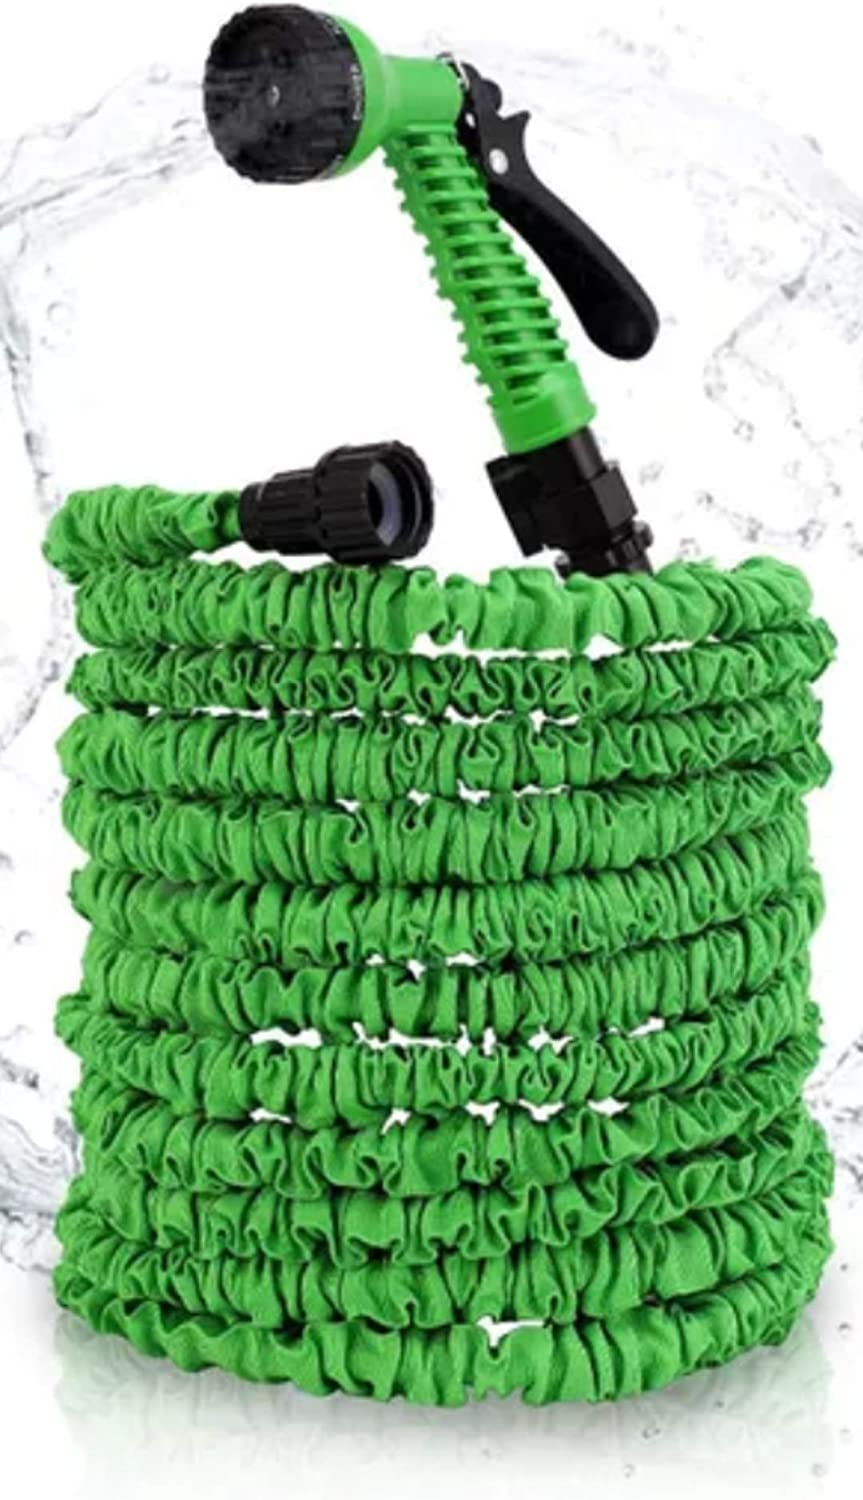 Pro Family New Upgraded Garden Hose - Expandable Triple Latex Core & Thickened Outside Fabrics Water Hose, No Kink & Twist, Comes with 7 Functions Gun and Black Hook for Easy Storage - 75FT Green